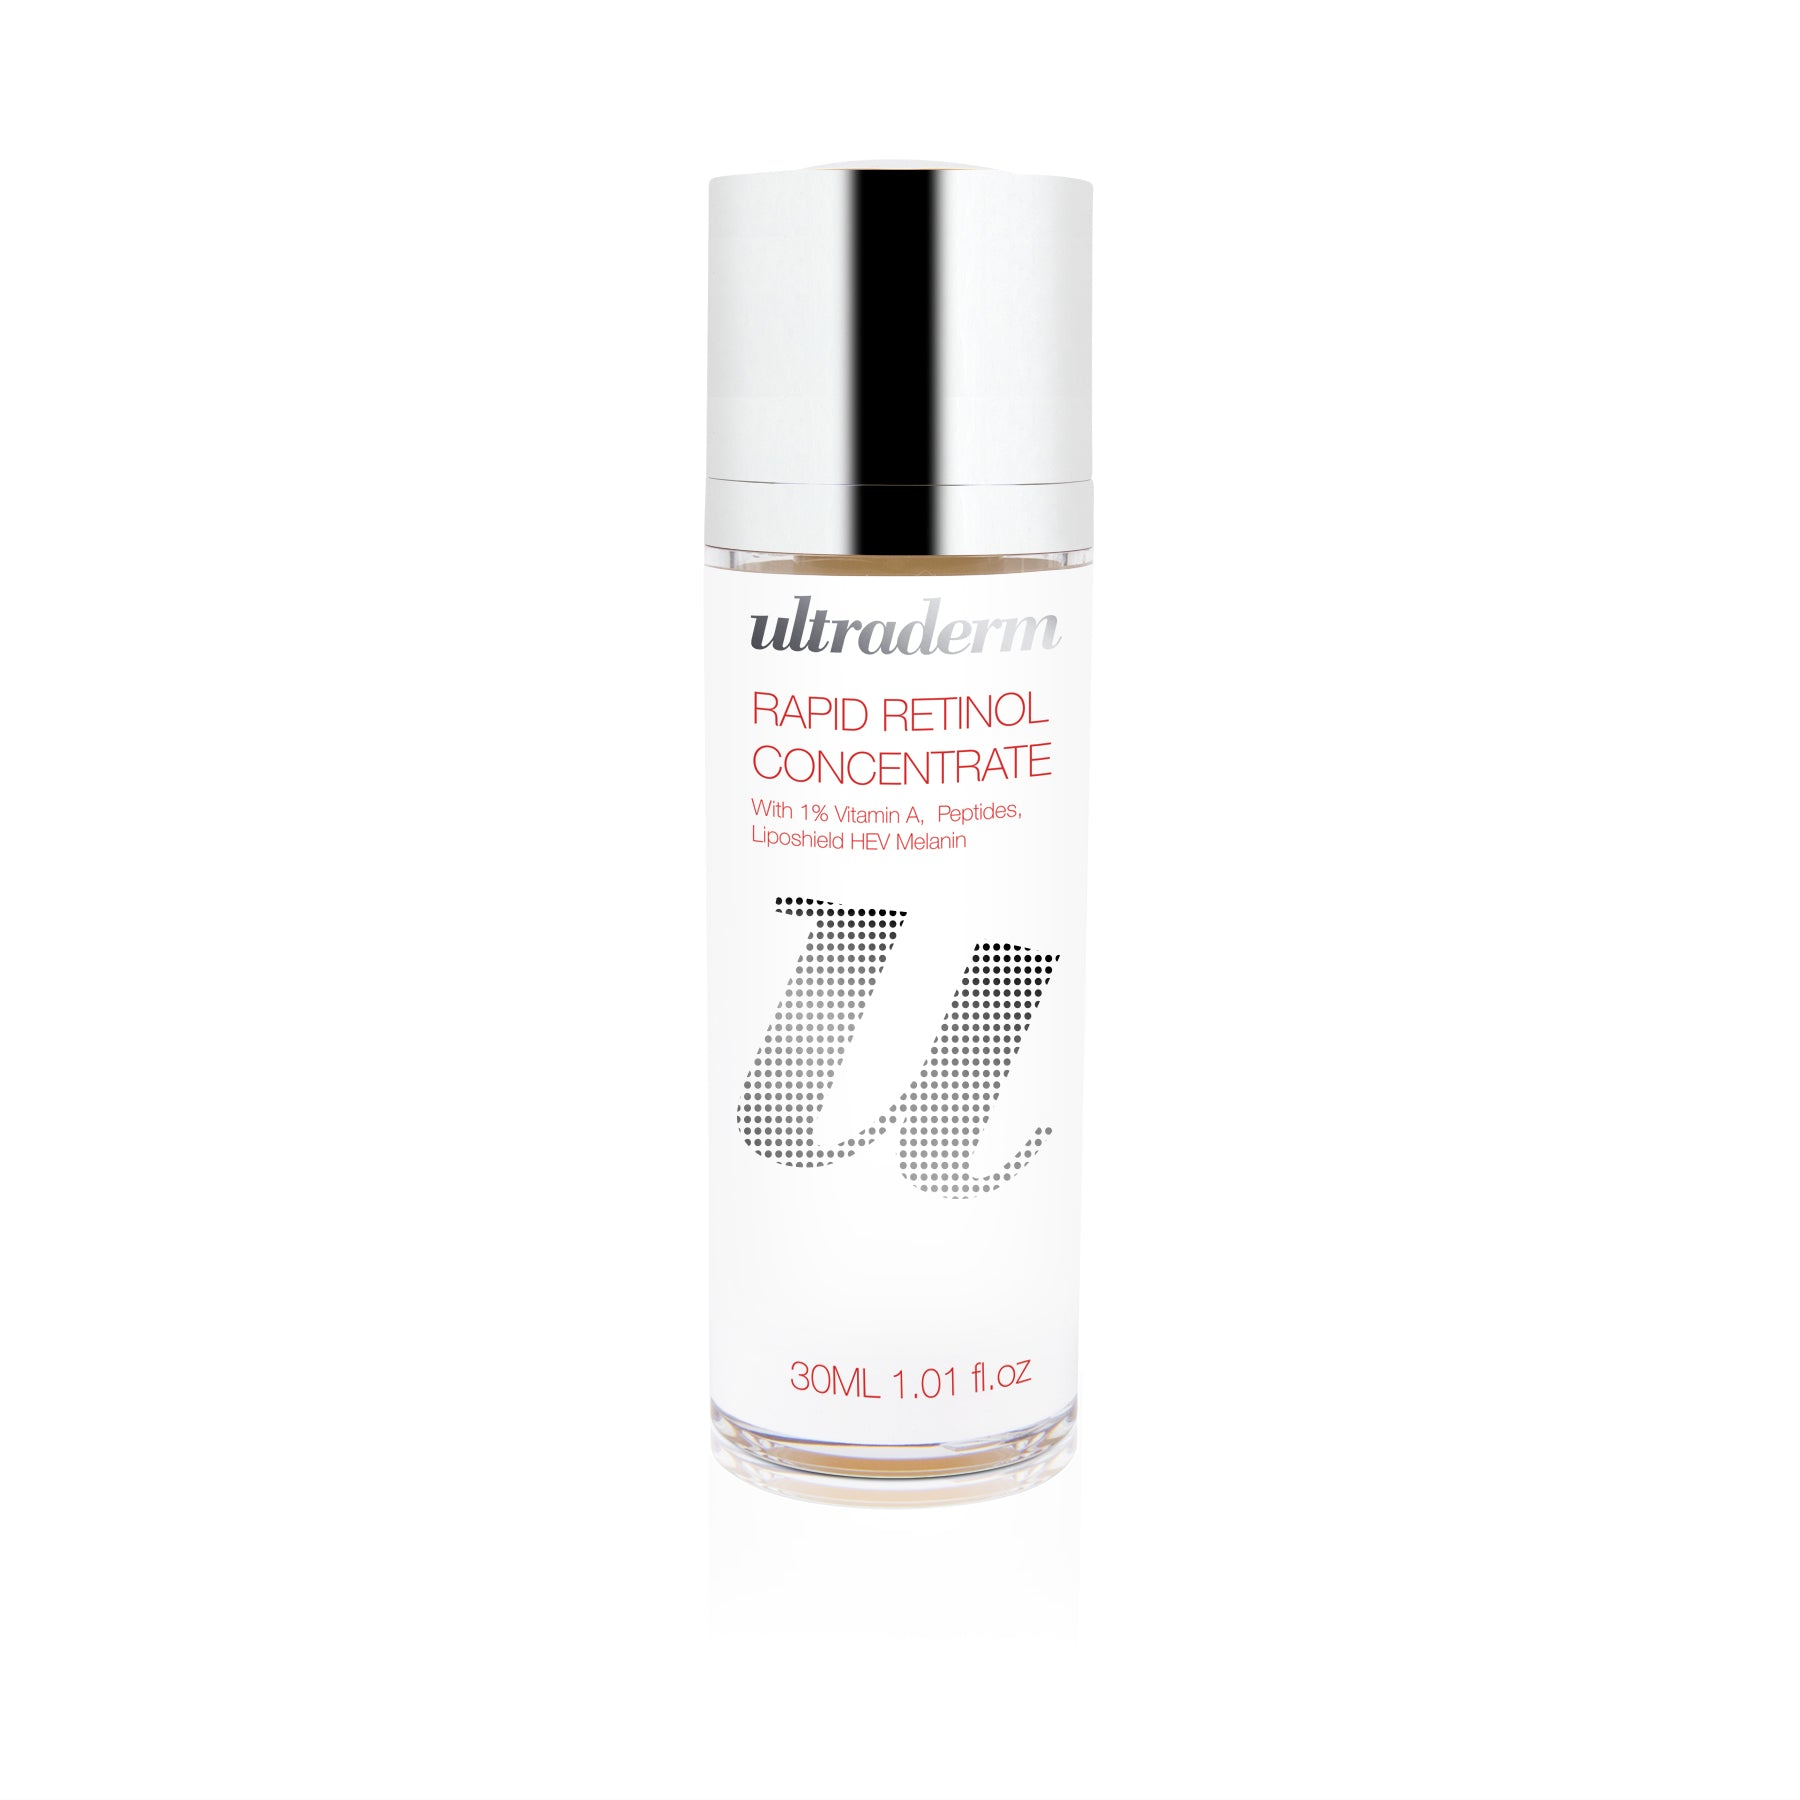 Ultraderm Rapid Retinol Concentrate, Super Strength Vitamin A Retinol Serum